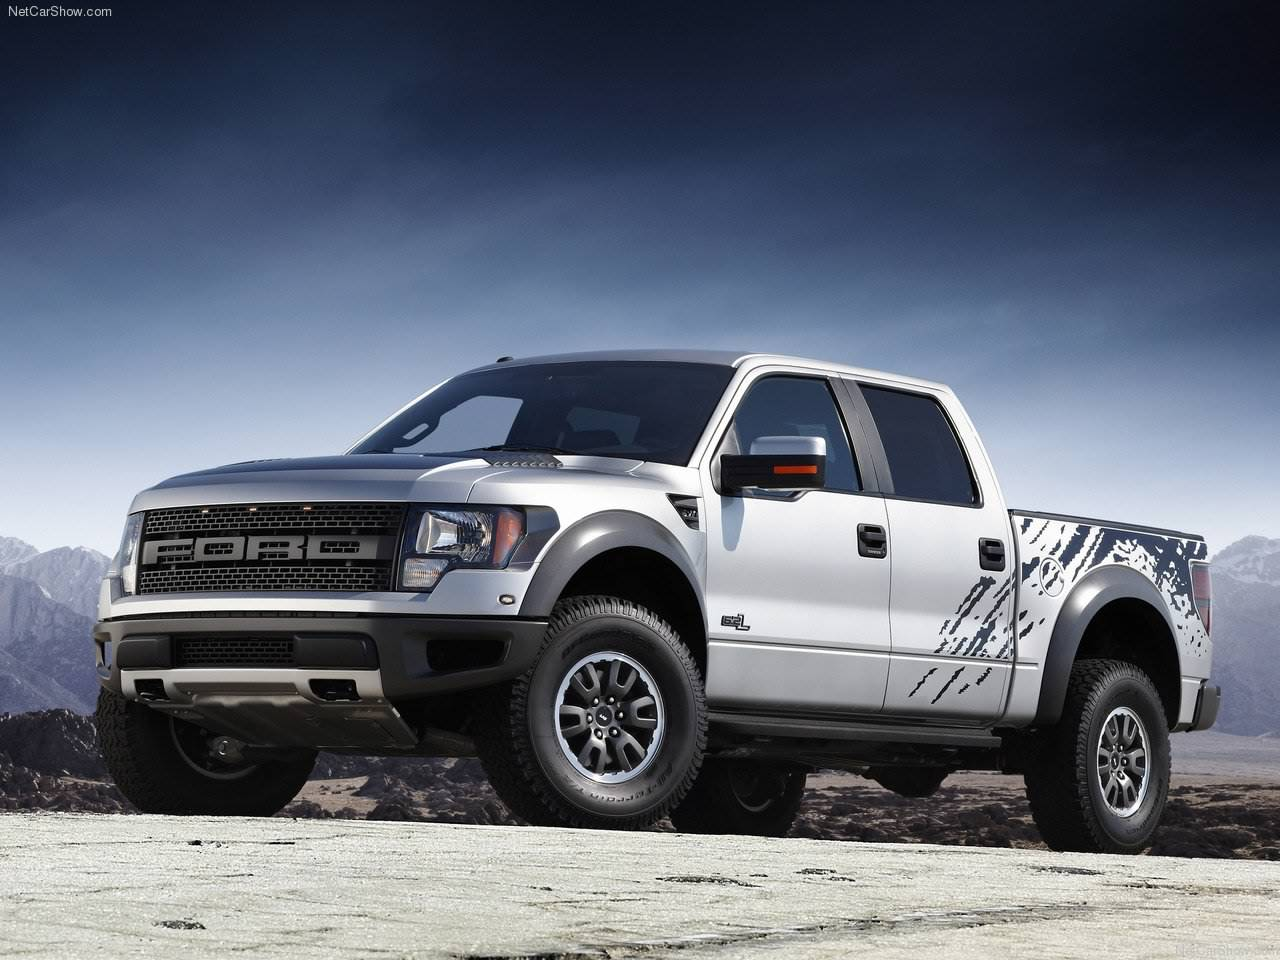 Ford F 150 SVT Raptor SuperCrew 2011 1280x960 wallpaper 01 The 1280x960